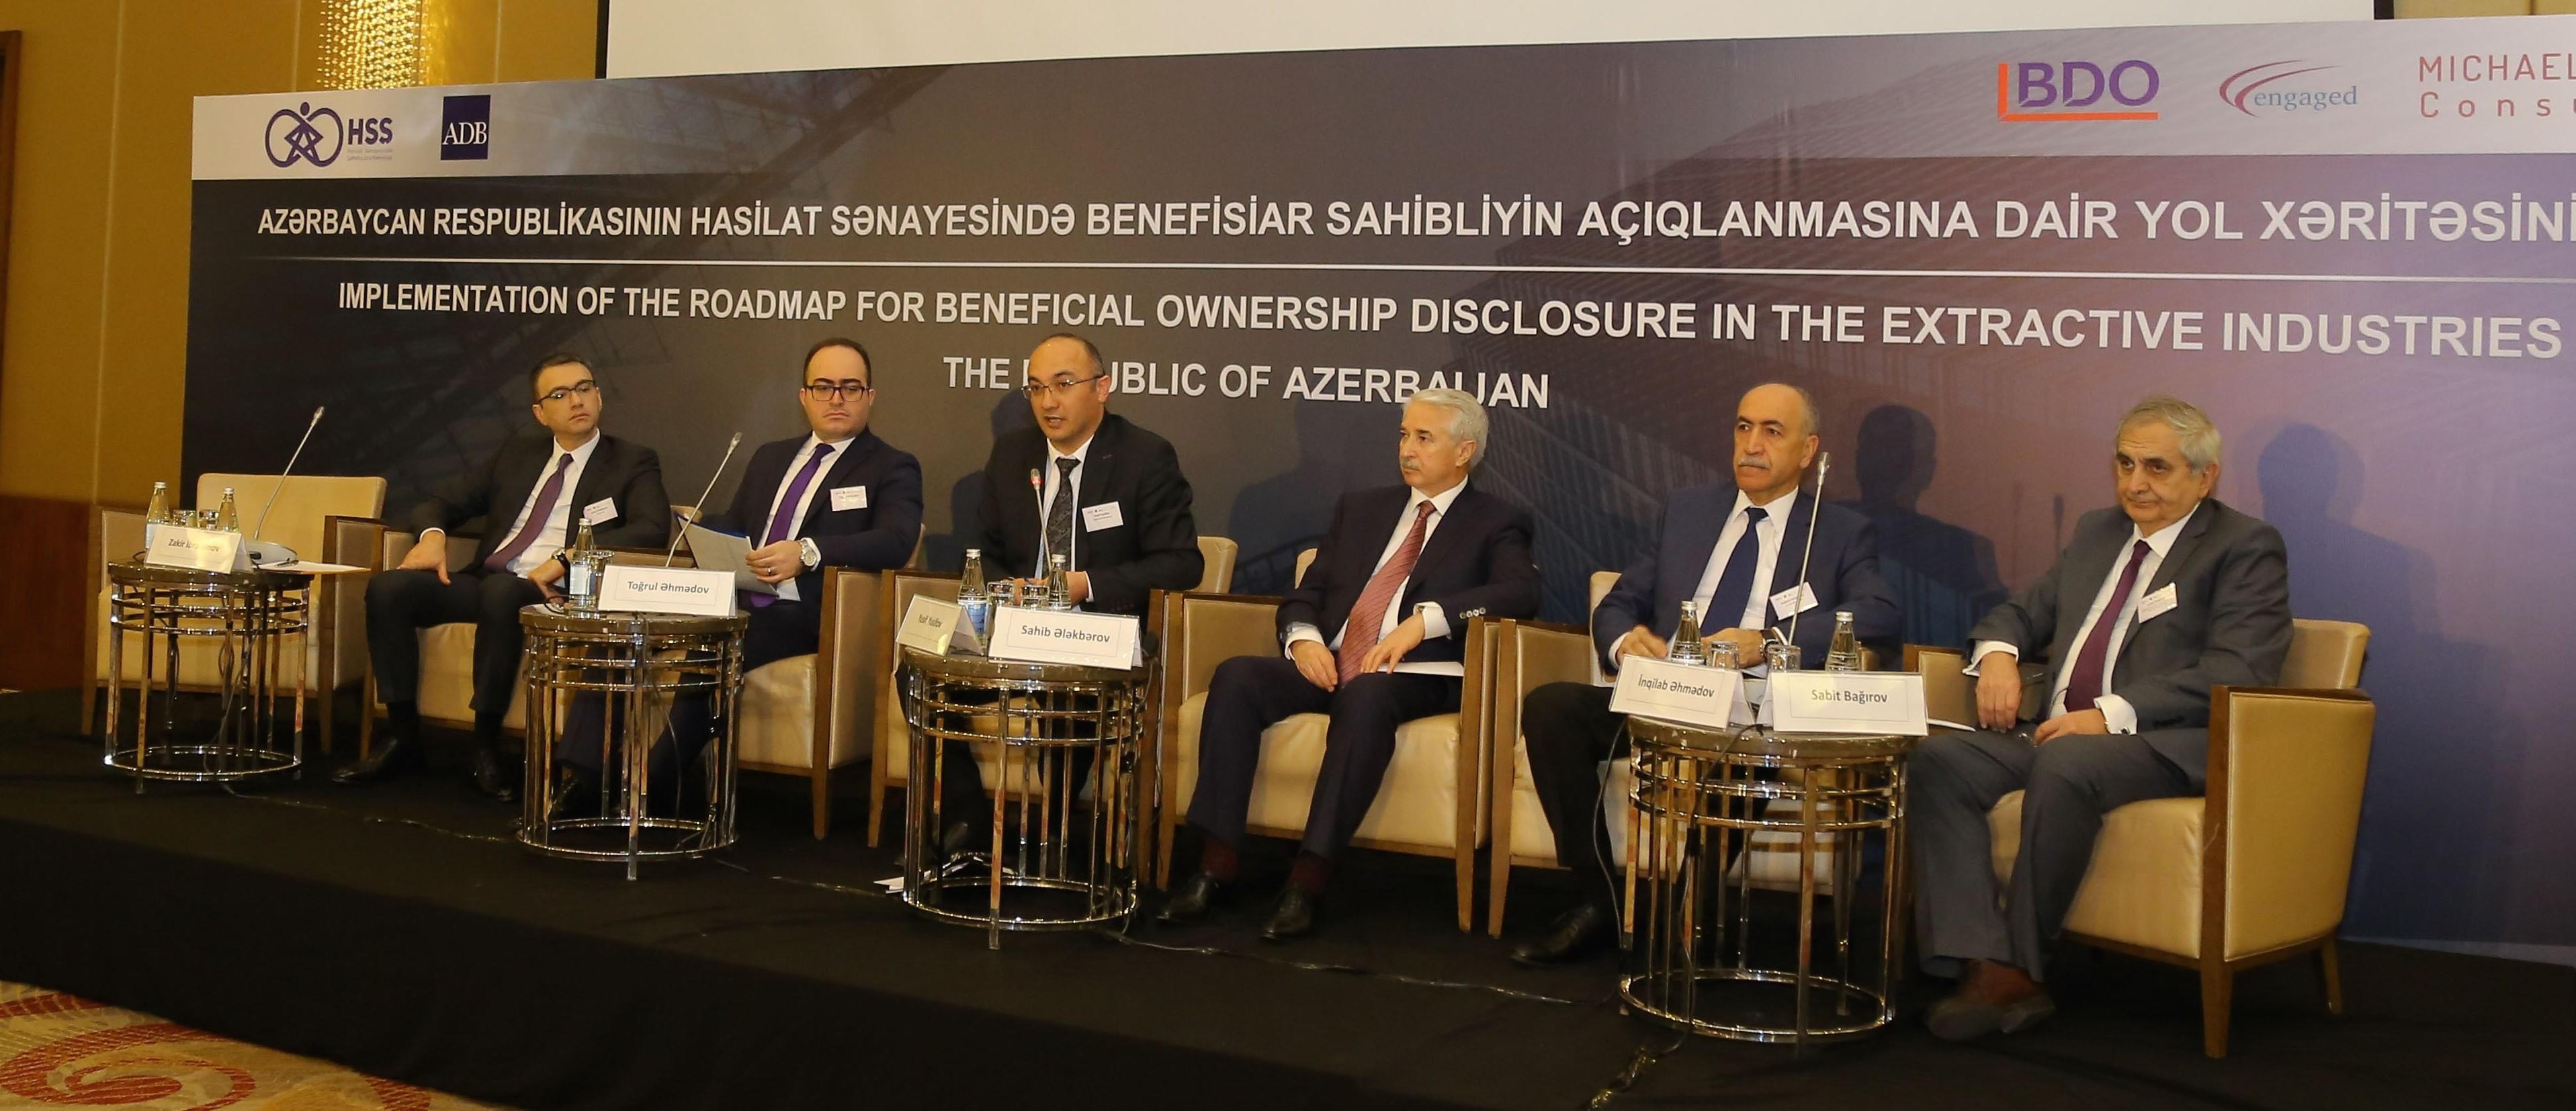 Public consultation on beneficial ownership disclosure in the extractive industries in Azerbaijan has been organized in Baku